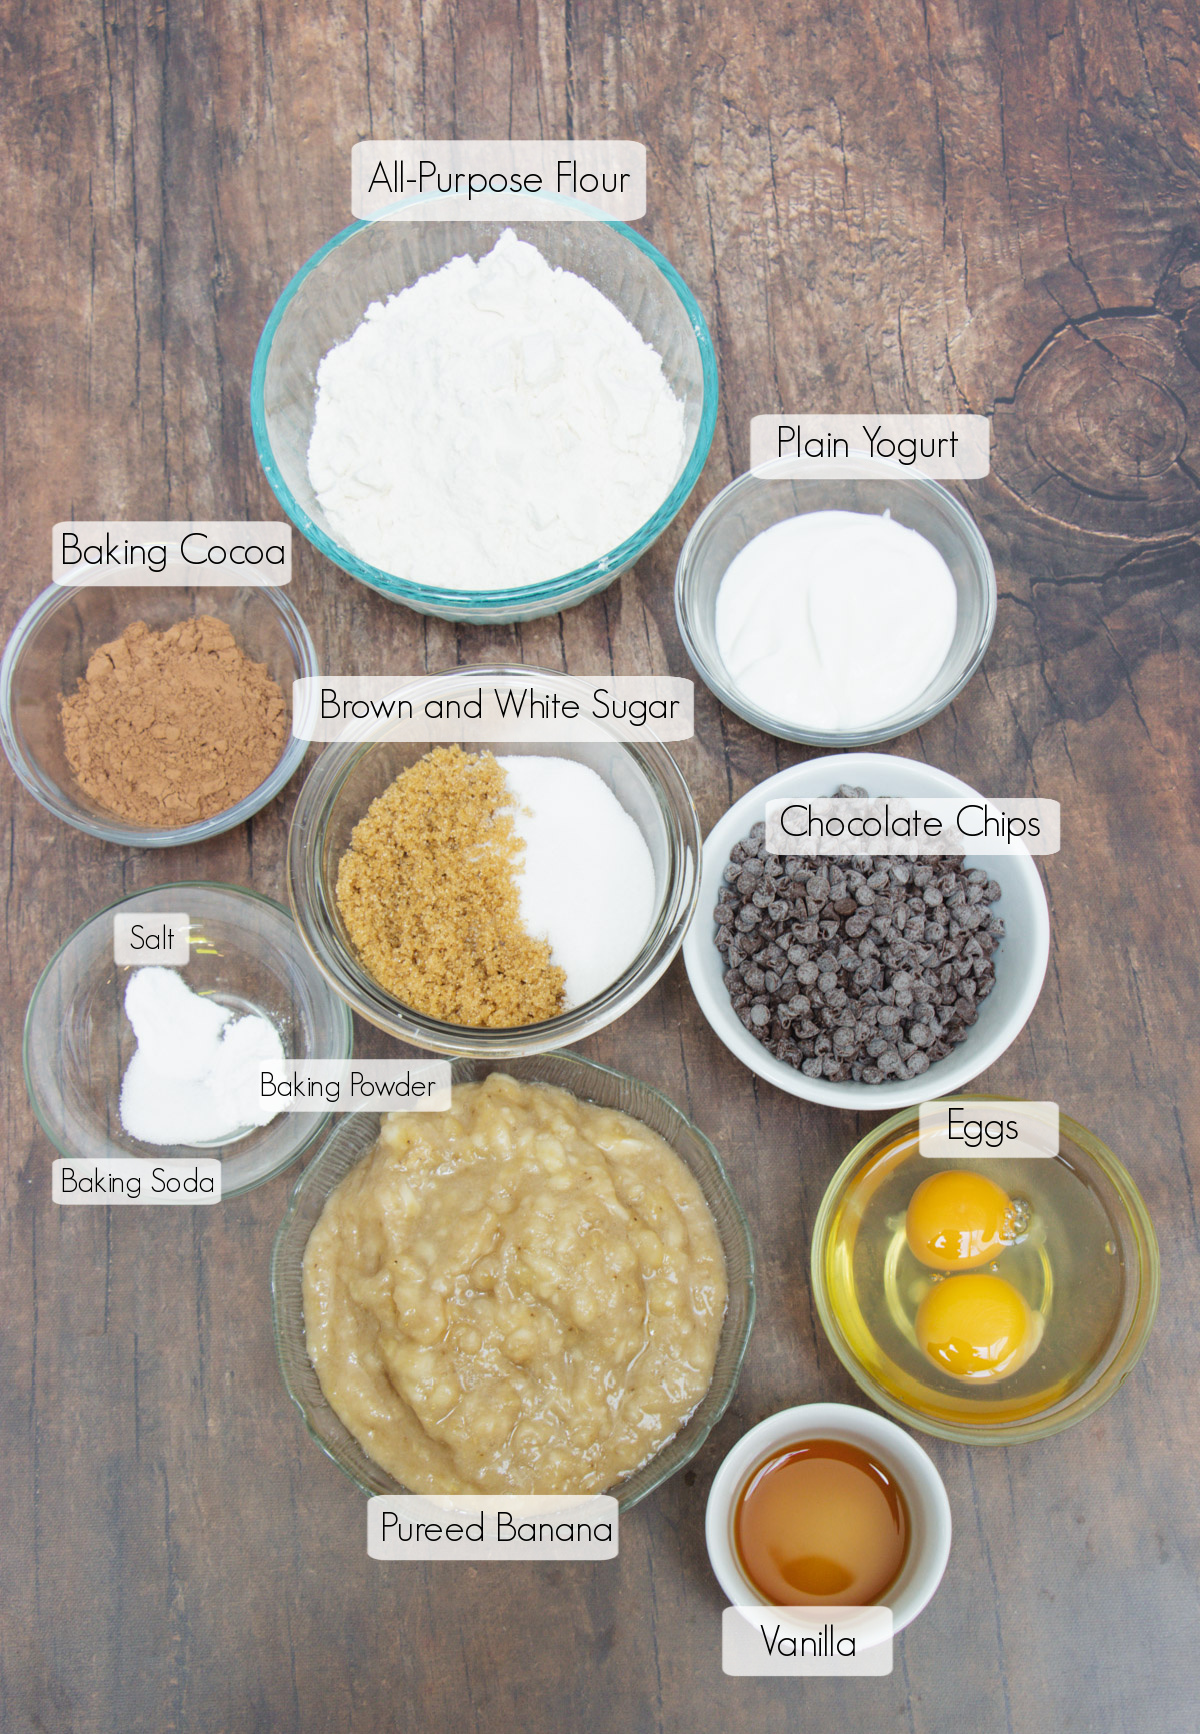 Labeled ingredients in bowls to make healthy chocolate chip banana bread.